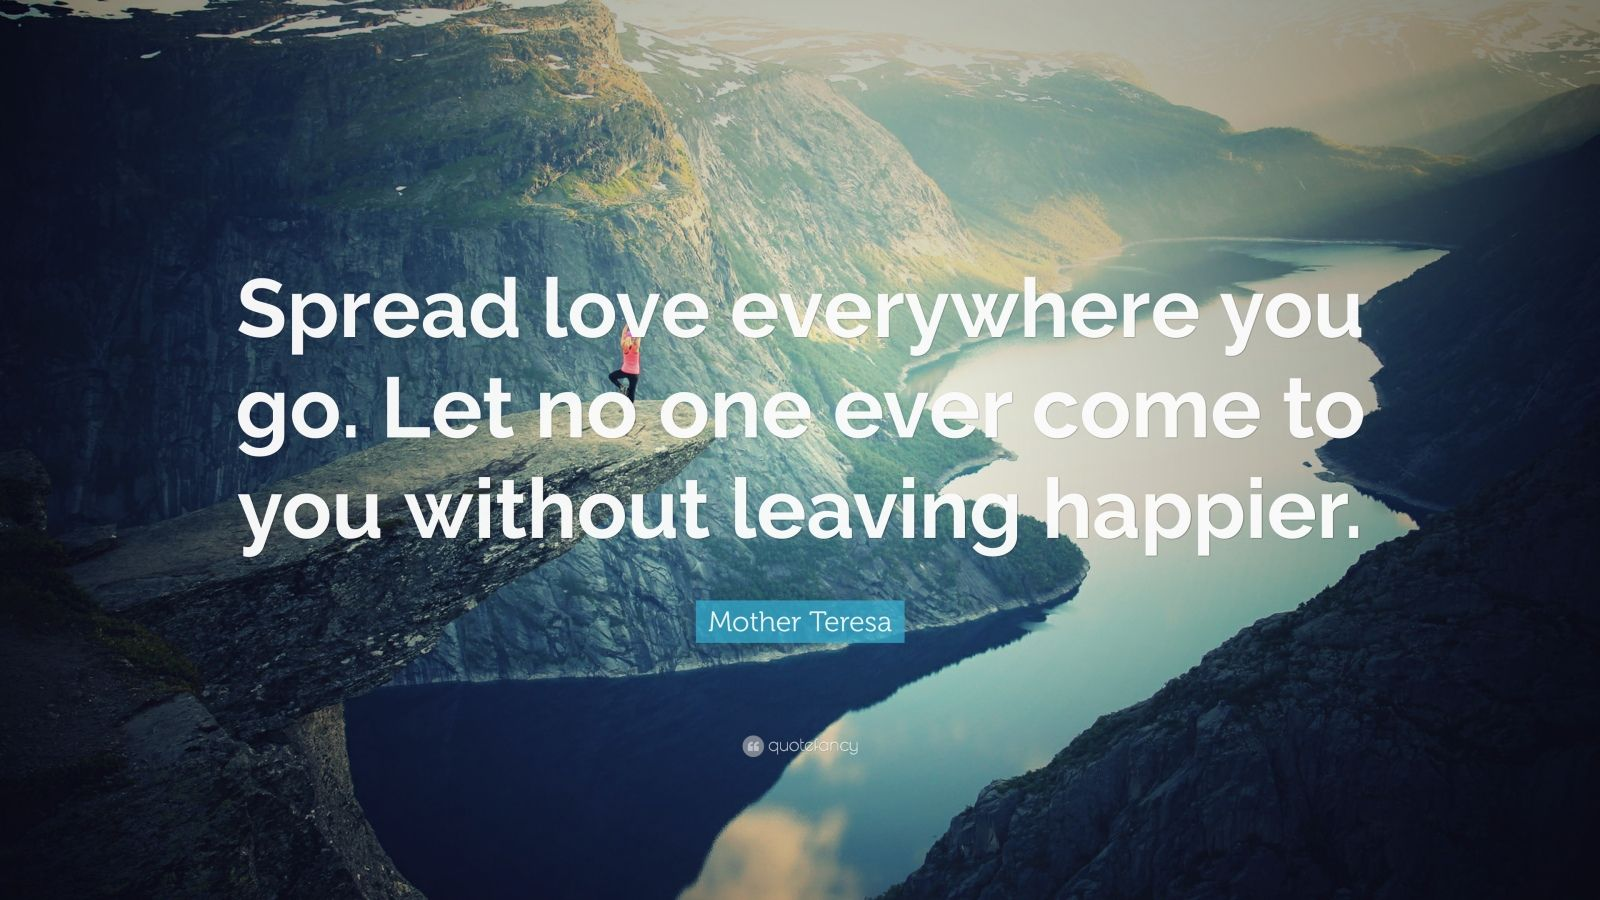 mother teresa quote spread love everywhere you go let